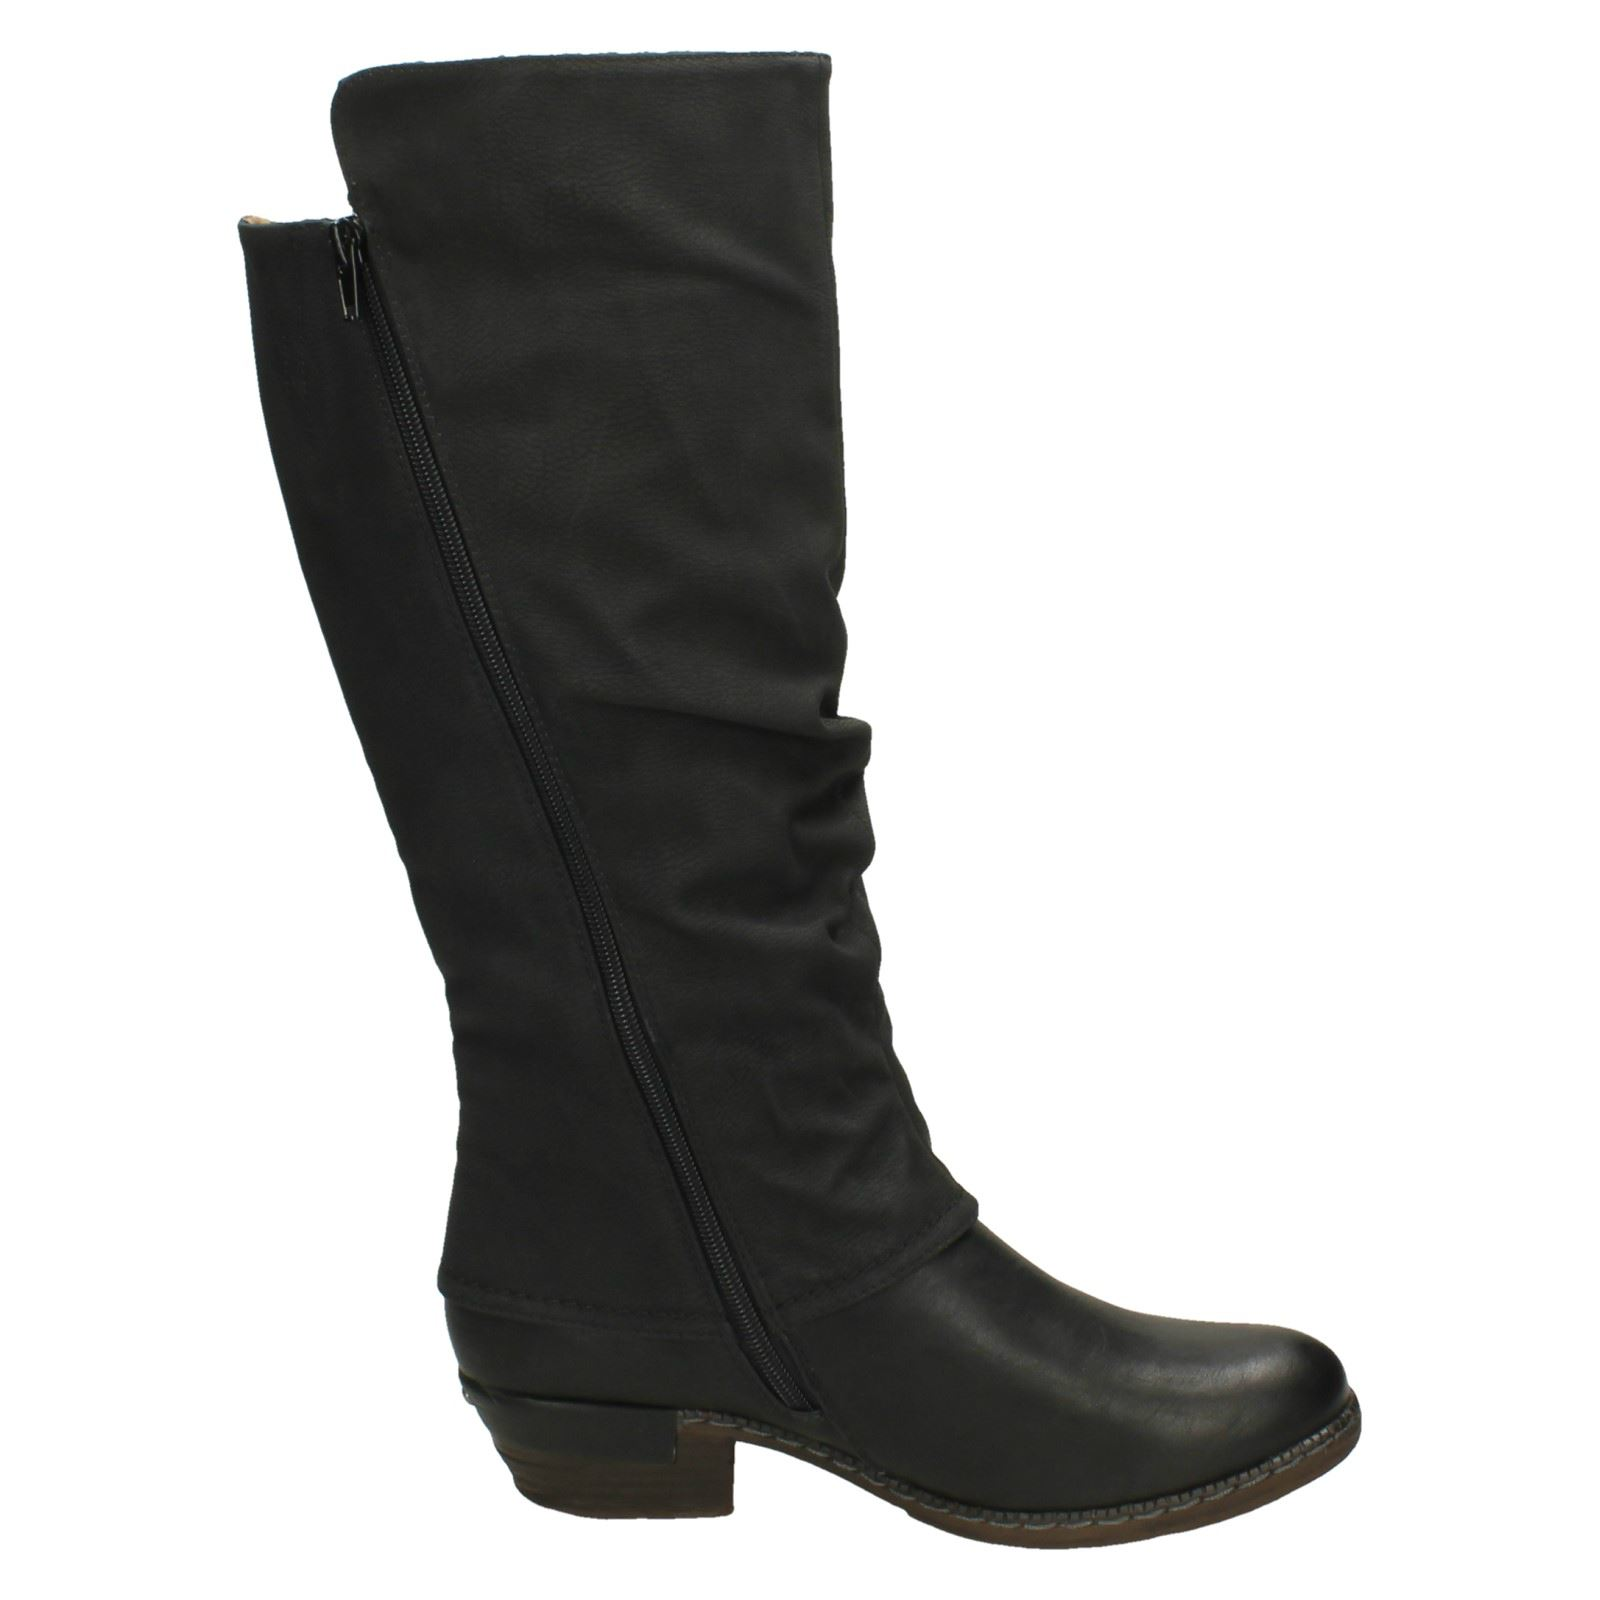 'Ladies Rieker' Knee High High High Casual Boots - 93655 90b339